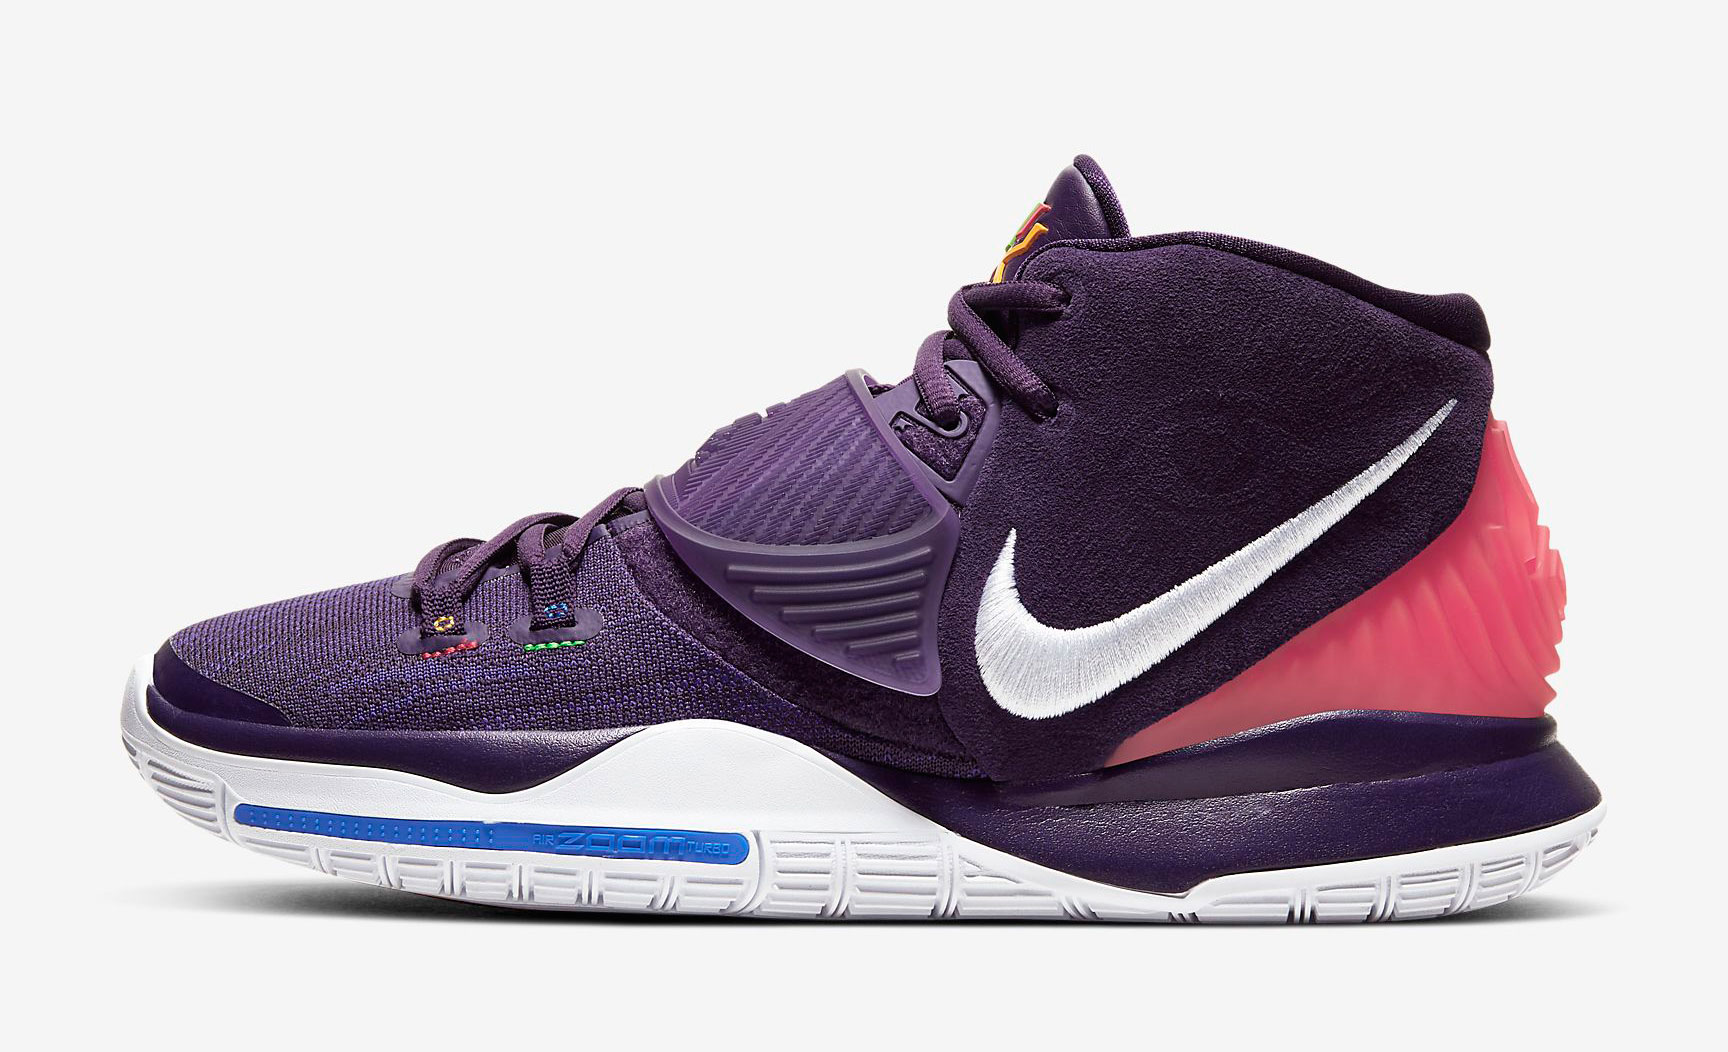 nike-kyrie-6-purple-enlightenment-release-date